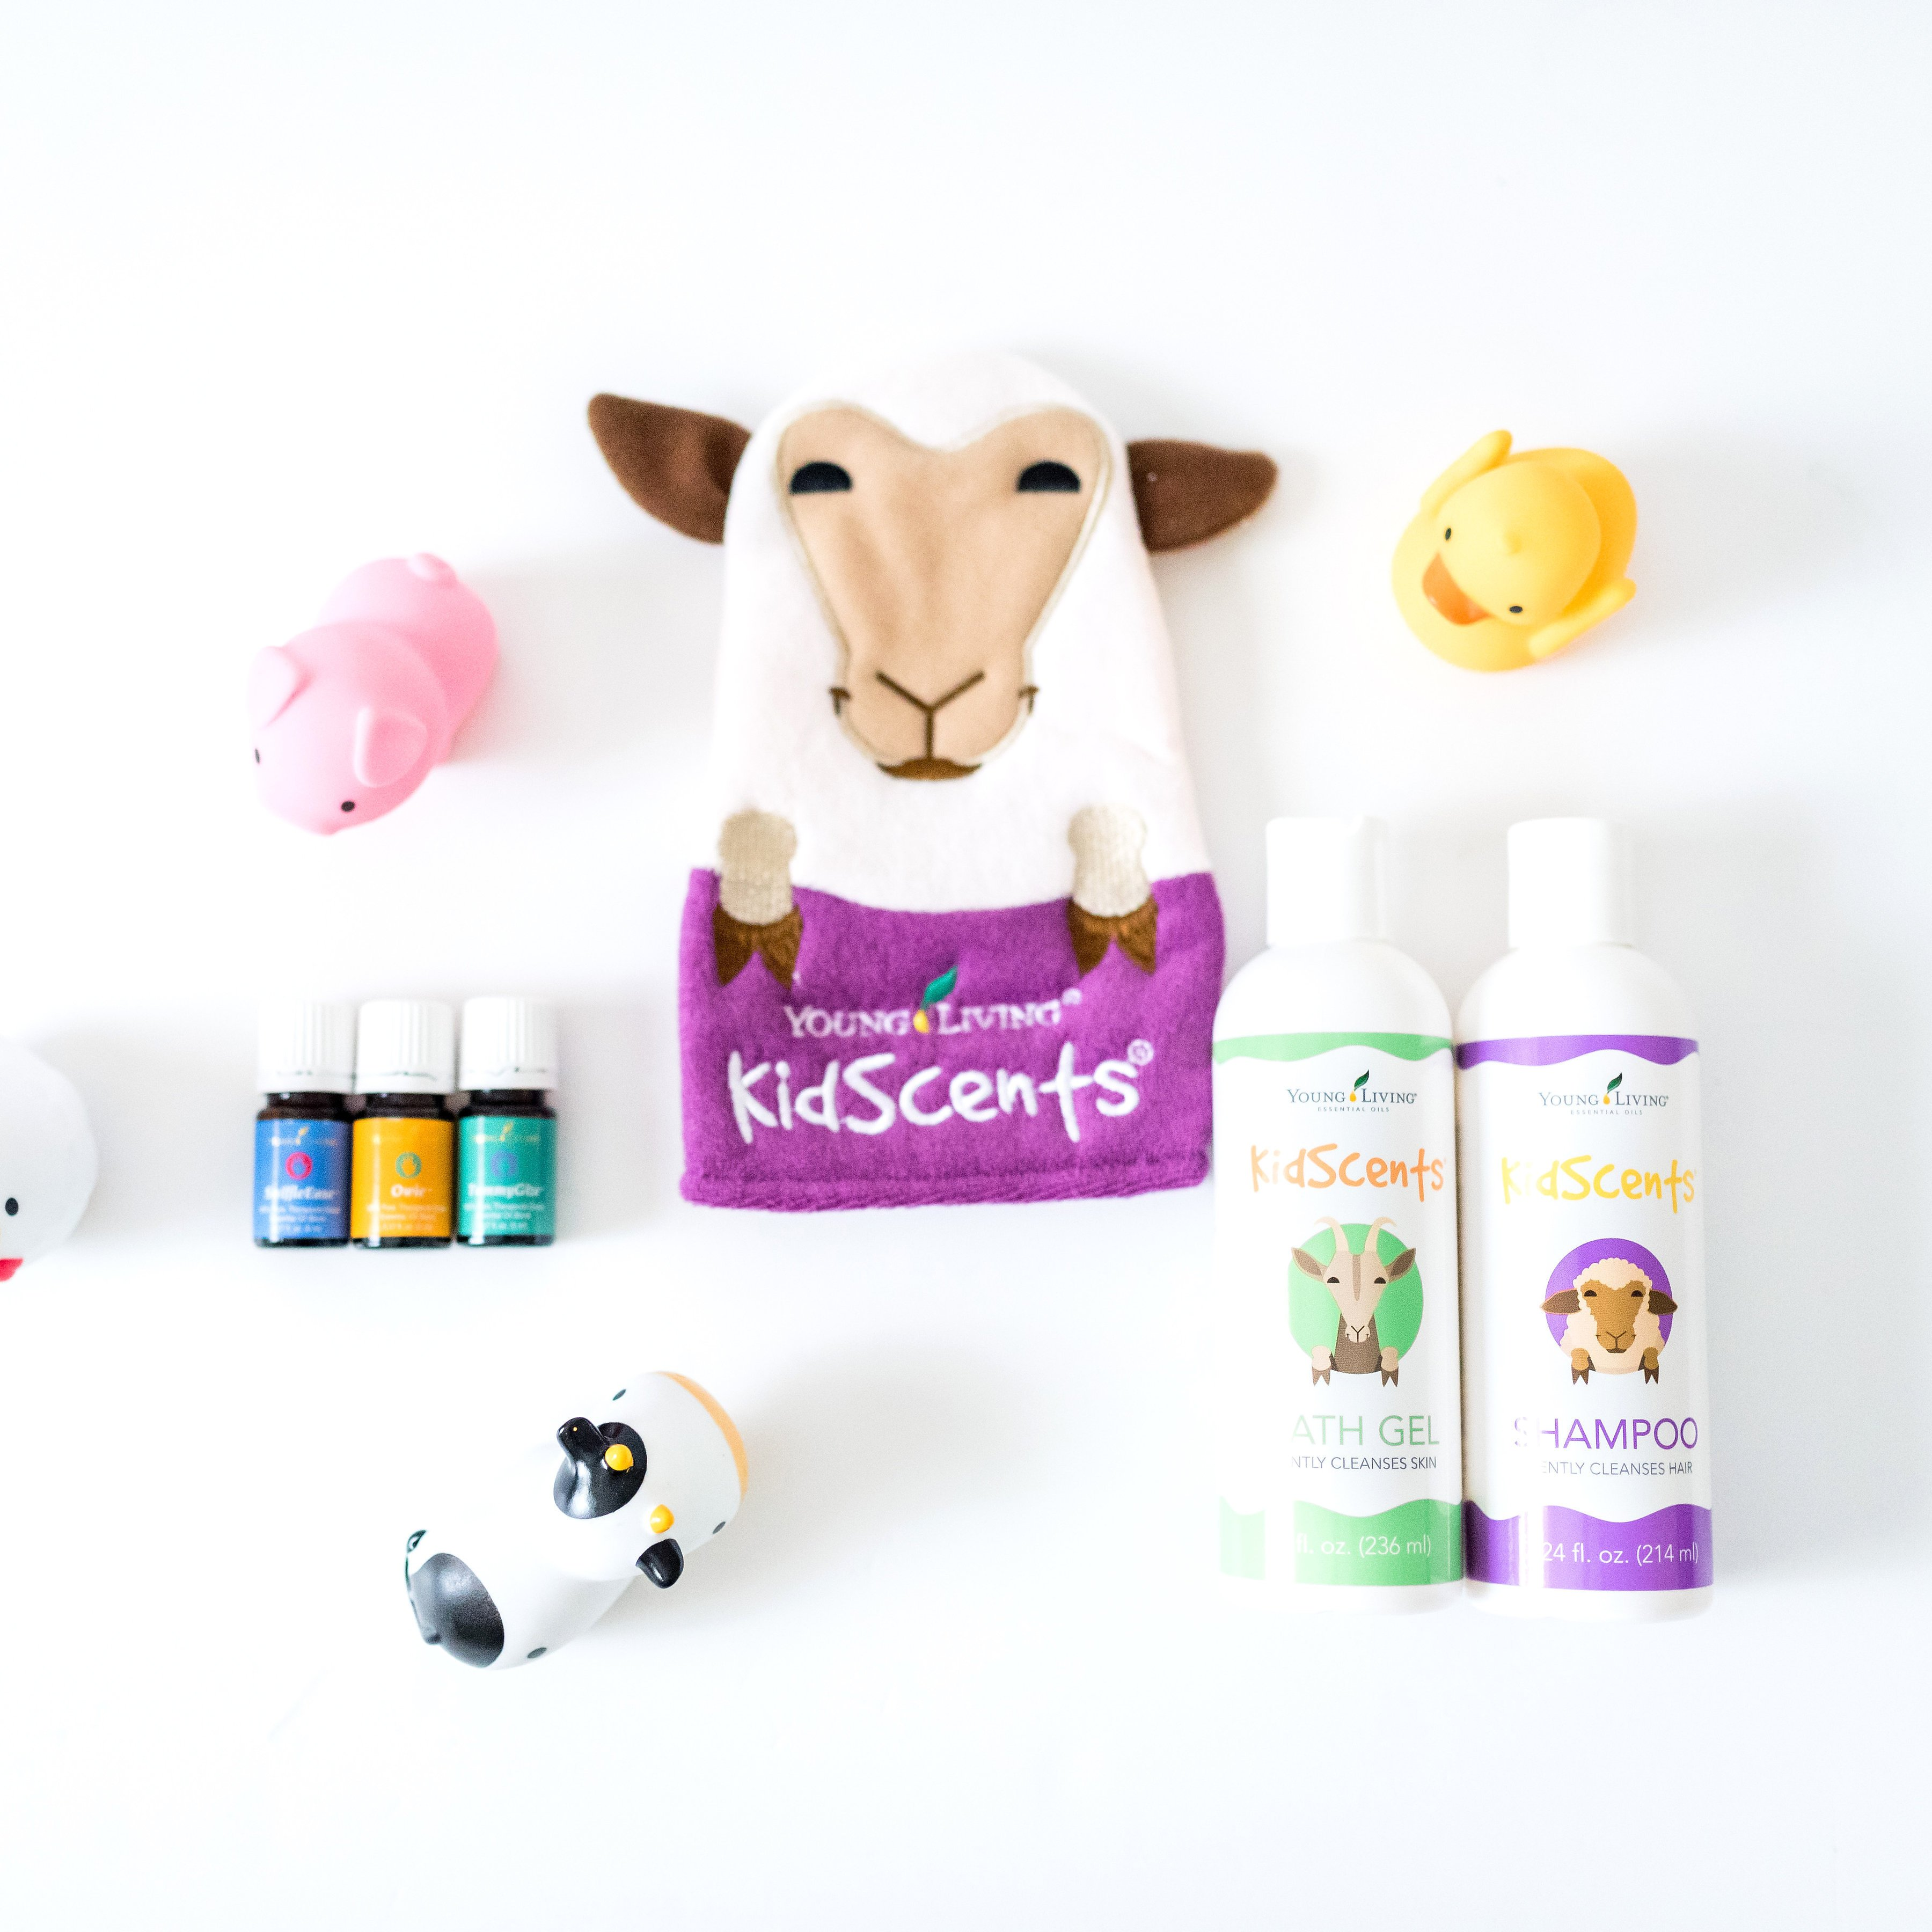 Favourite Chemical Free Products - Kidscents Line From Young Living, Pure, Natural and NO Chemicals.